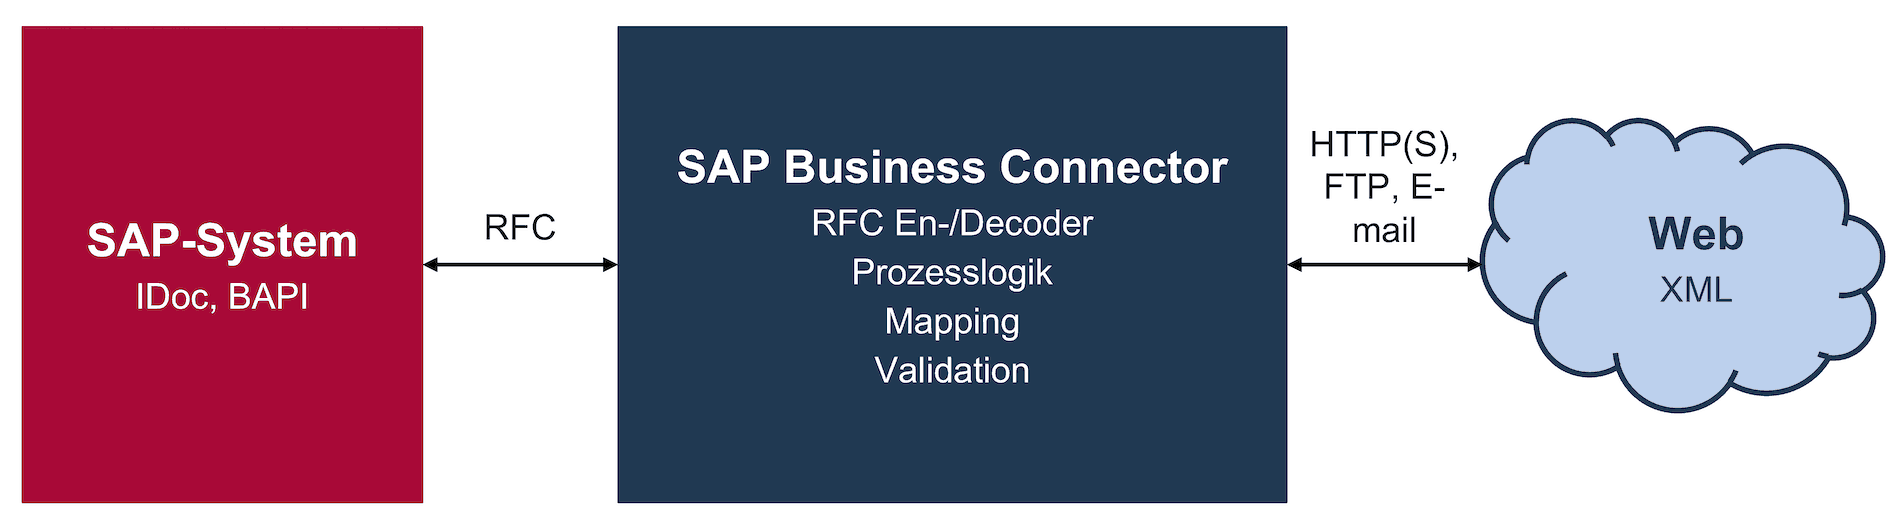 Dokumentenaustausch mithilfe des SAP Business Connector